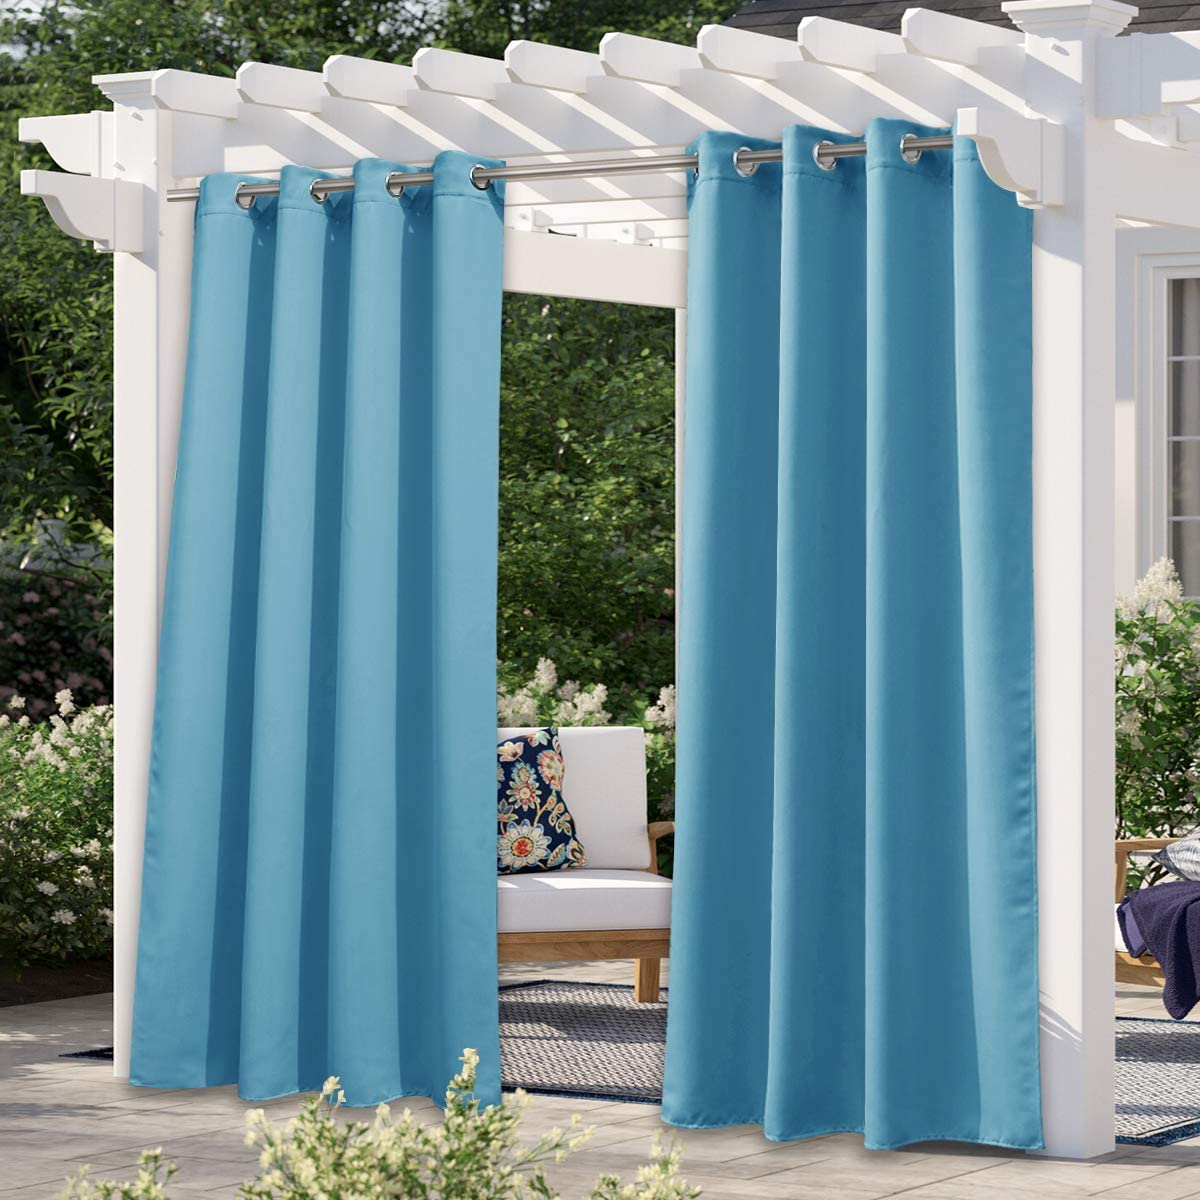 NICETOWN Outdoor Curtain for Patio Waterproof, Energy Saving Thermal Insulated Stainless Steel Grommet Sunlight Block Privacy Protect for Pool, 1 Piece, 52 Inch by 108 Inch, Teal Blue